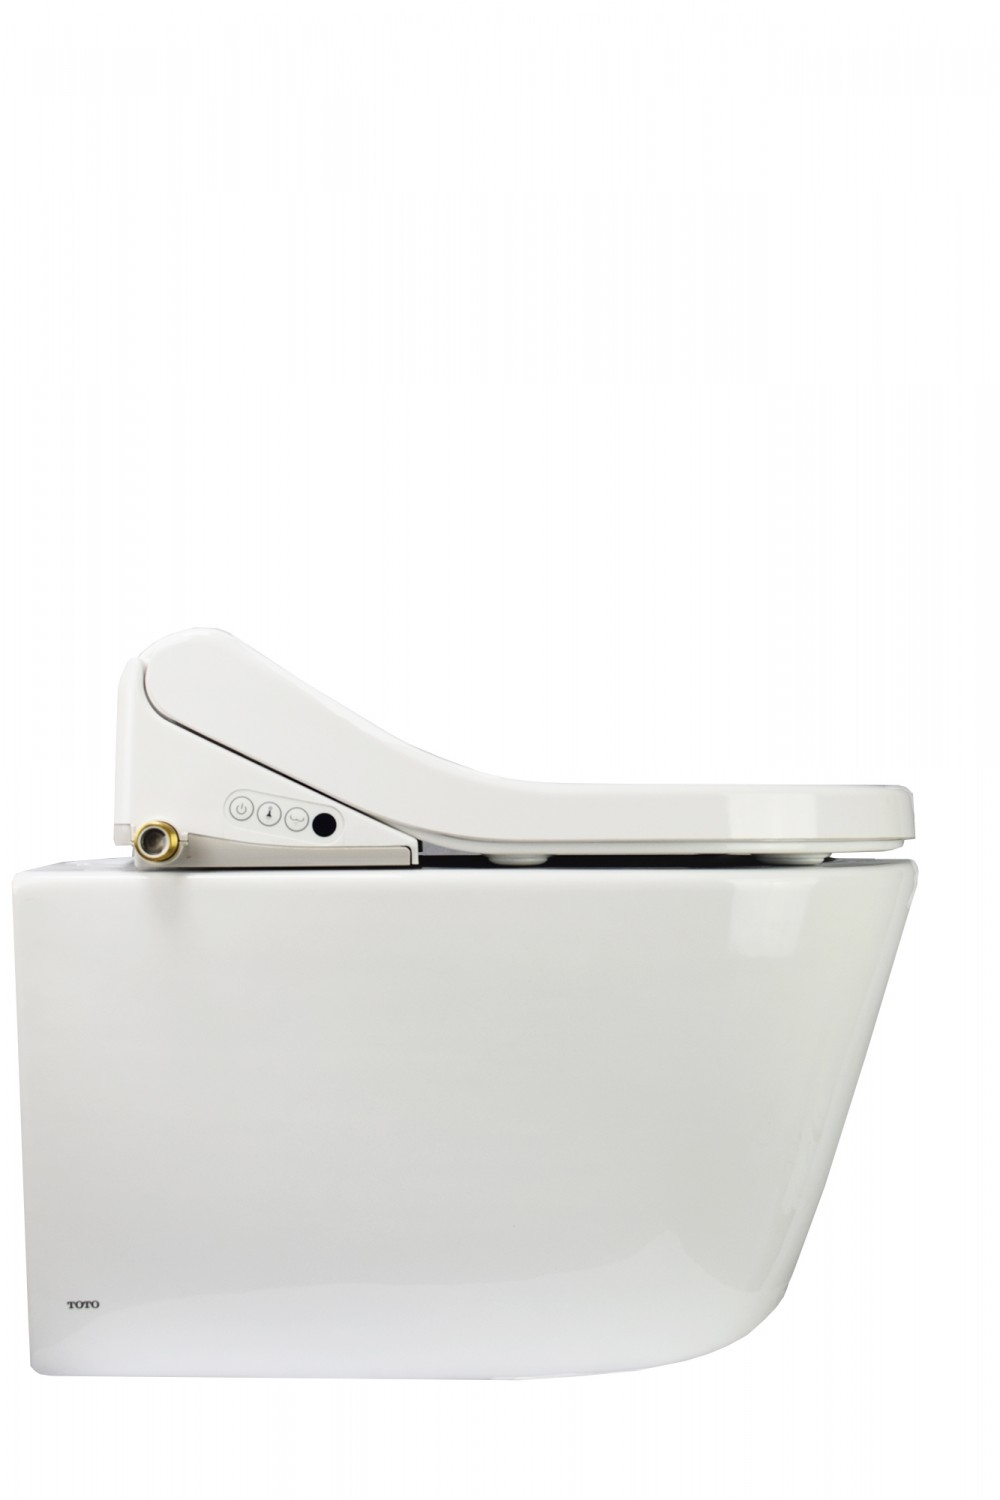 Maro washlet aqualet